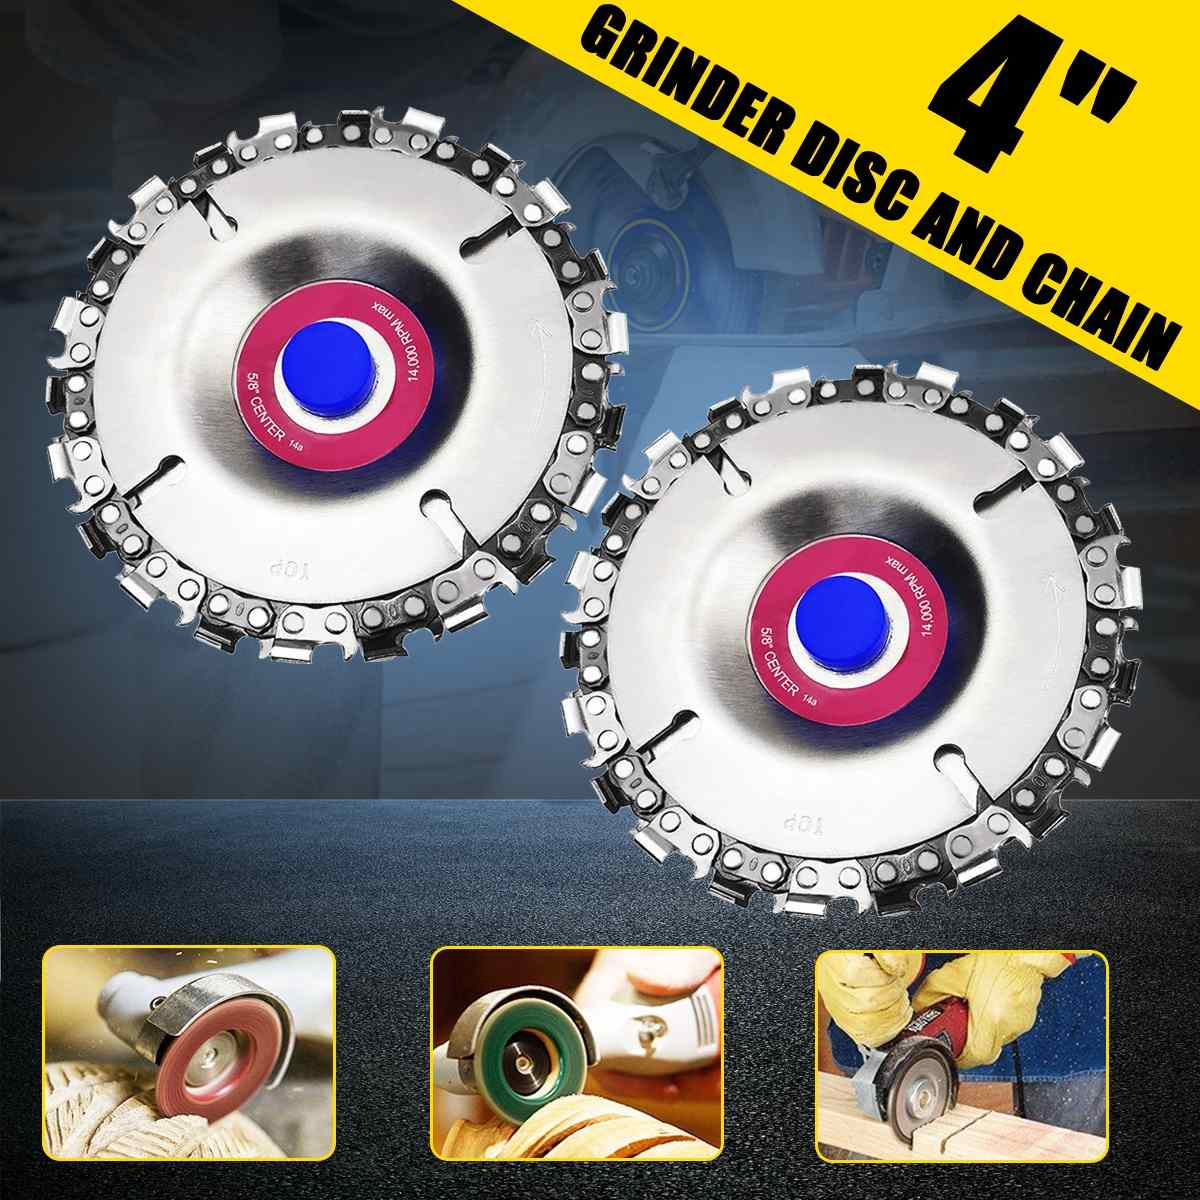 1Pcs 4'' Woodworking Chain Plate Angle Grinding Chain Wheel Wood Carving Disc 22 Tooth For 100/115mm Angle Grinder